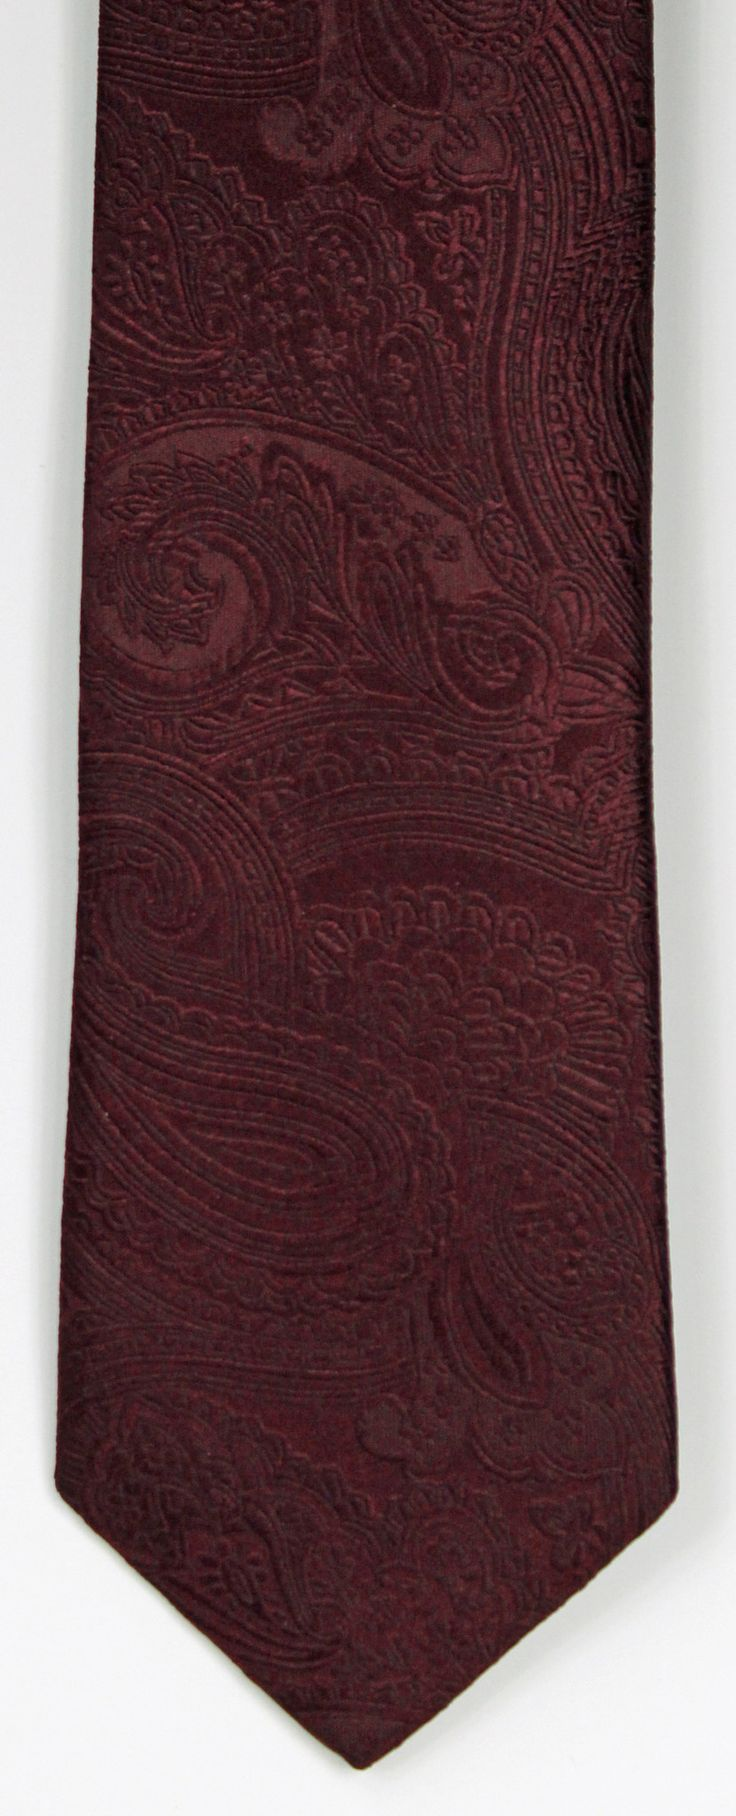 """The Serica collection of """"Hand Made in Italy"""" neckwear is distinctive, sophisticated, and very elegant. Serica uses only the finest Italian silks and craftsmanship in designing its collection of ties"""